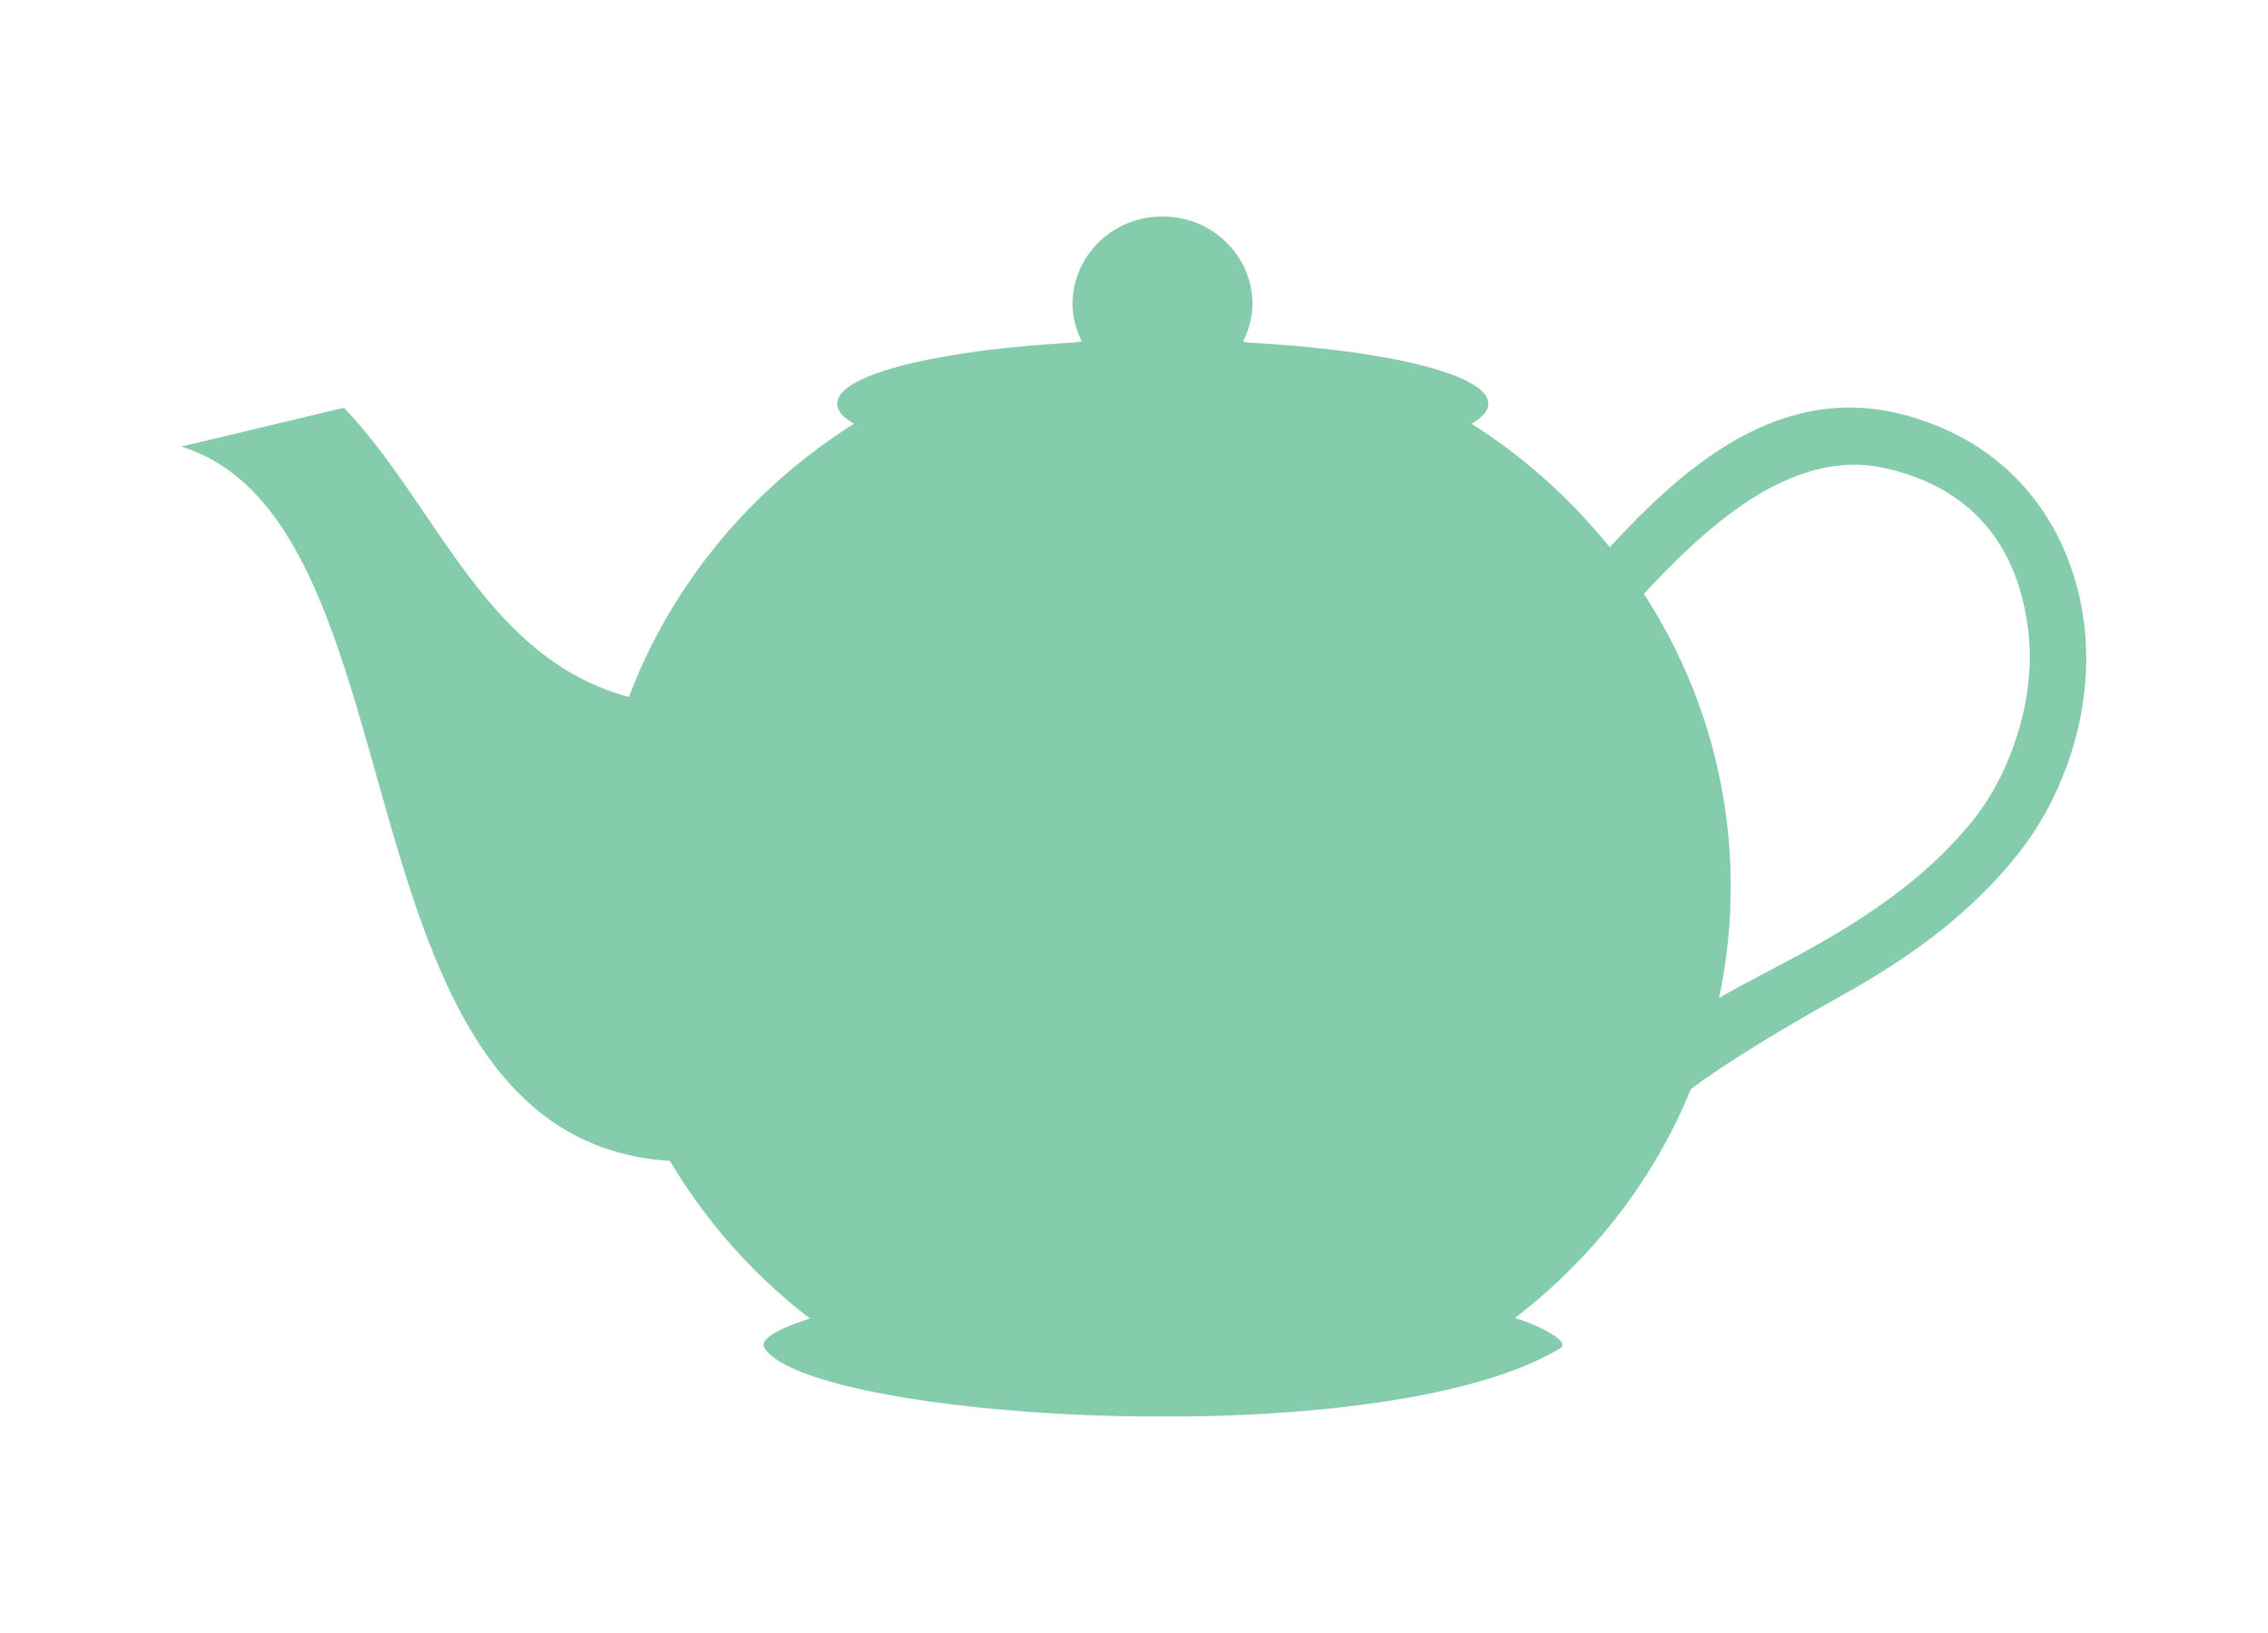 Pot of tea clipart png Pin by Sugarcakes Spice on Cupcake Face | Tea pots, Tea cups, Tea png